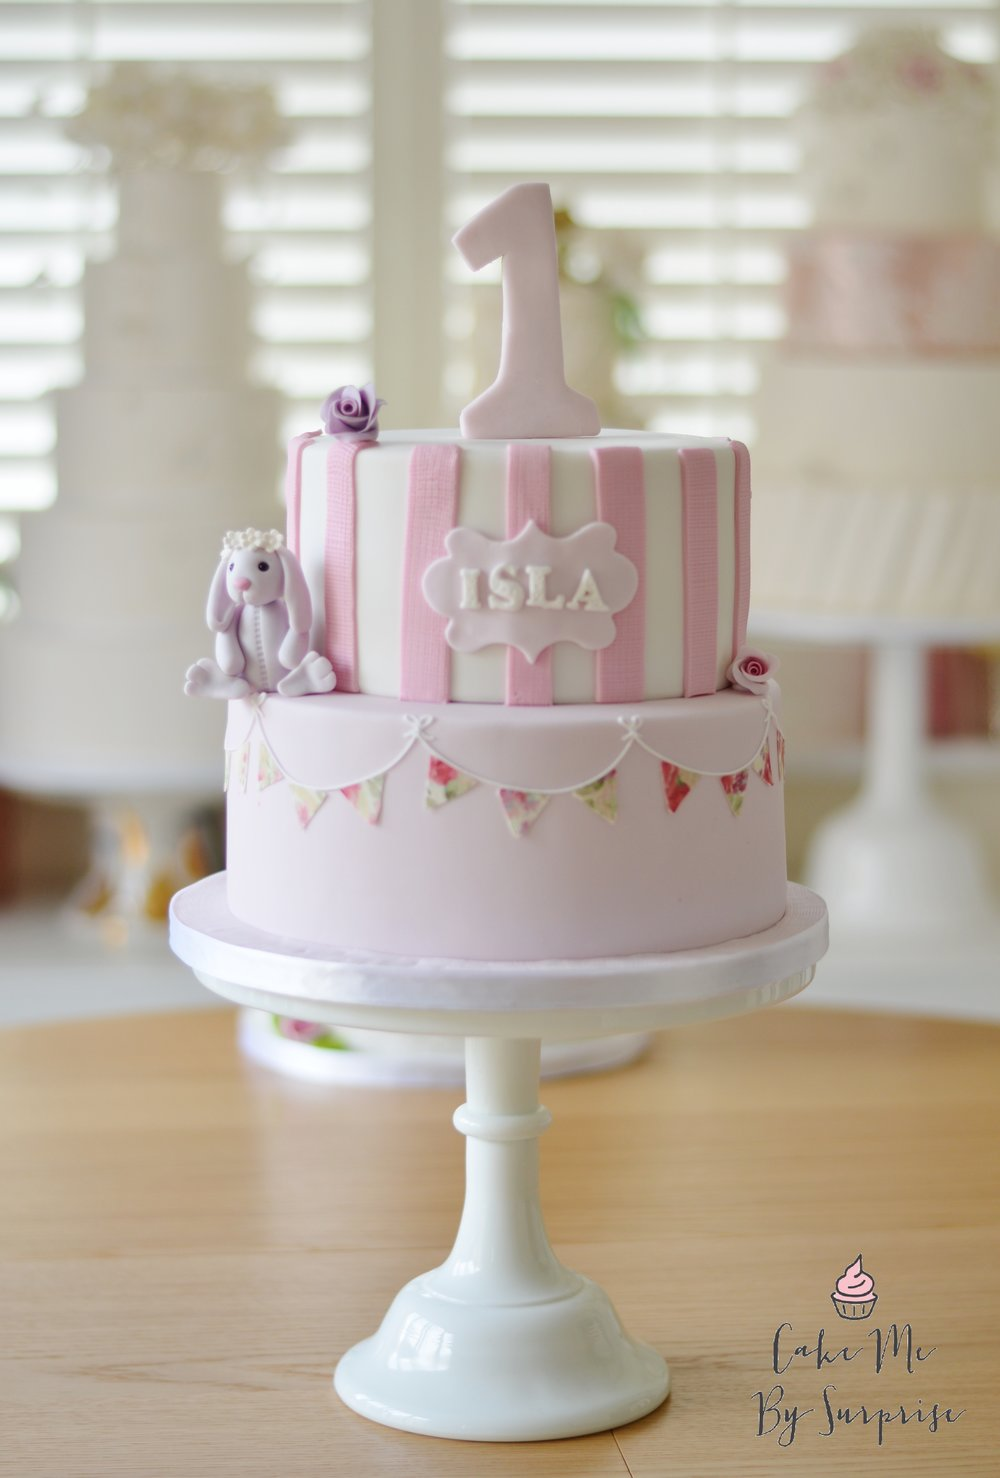 1st Birthday Cake for little girl.JPG